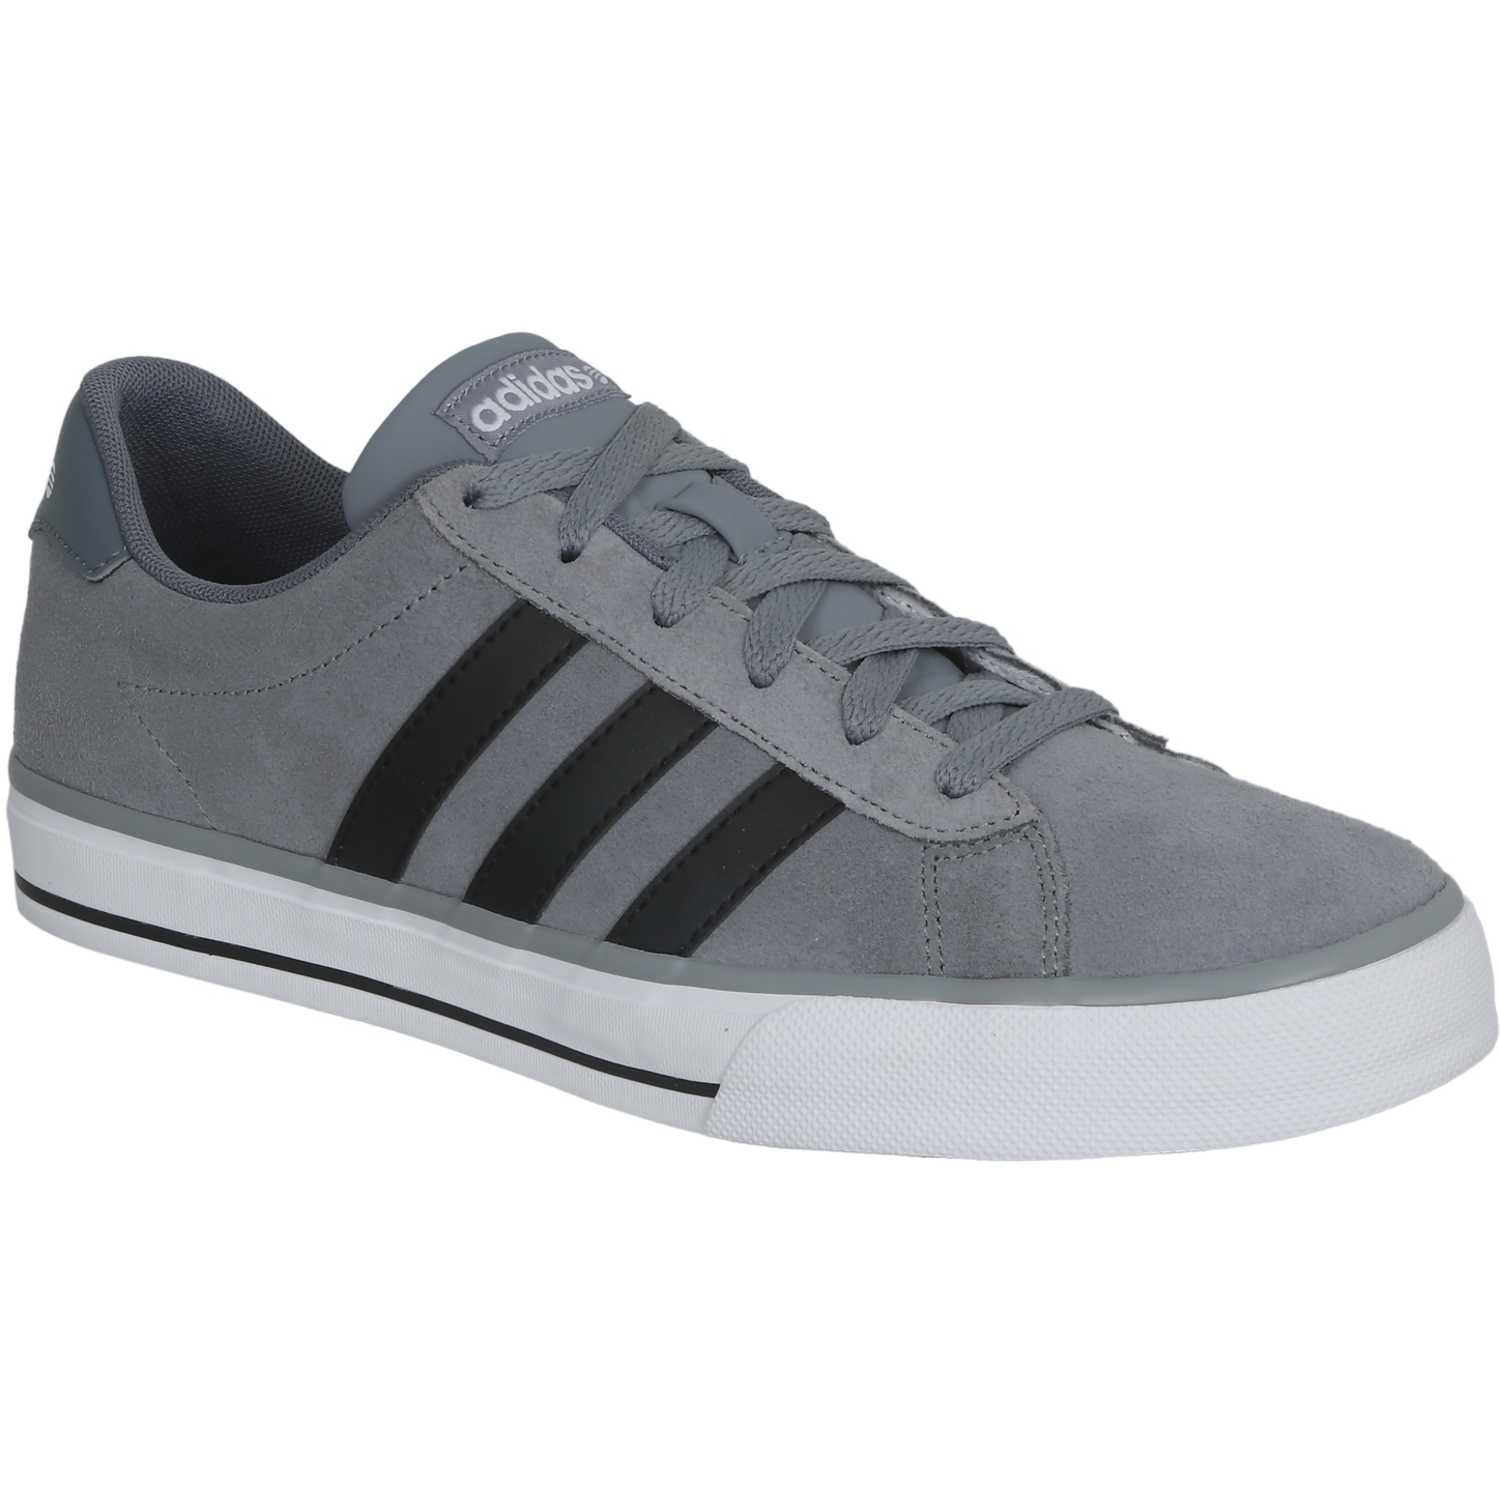 adidas neo hombre gris > Clearance shop